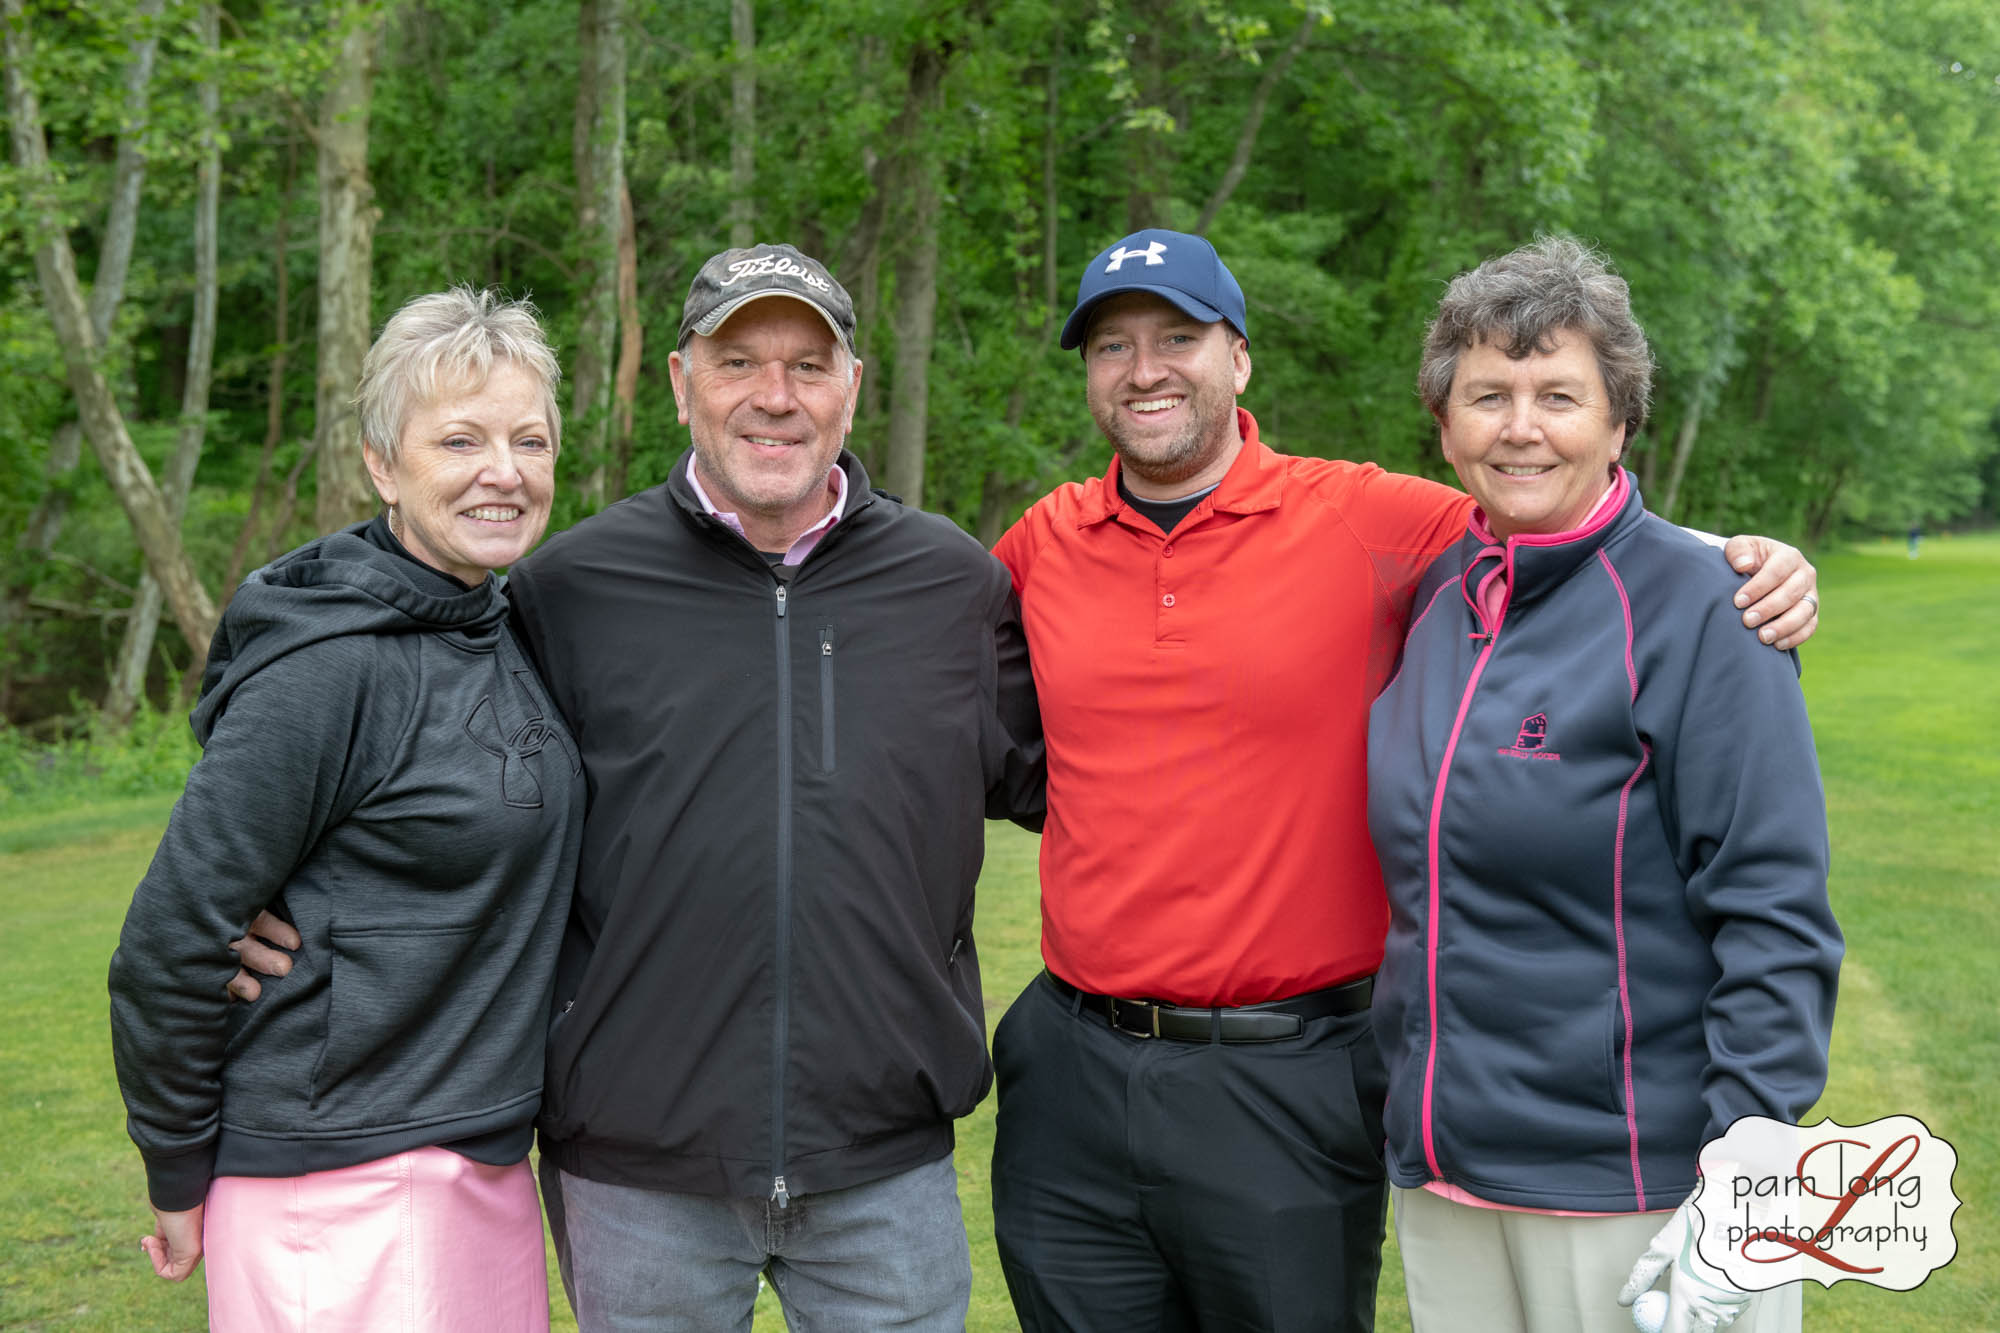 Pam Long Photography Blossoms of Hope Blossoms Pink Greens Golf Classic-44.jpg